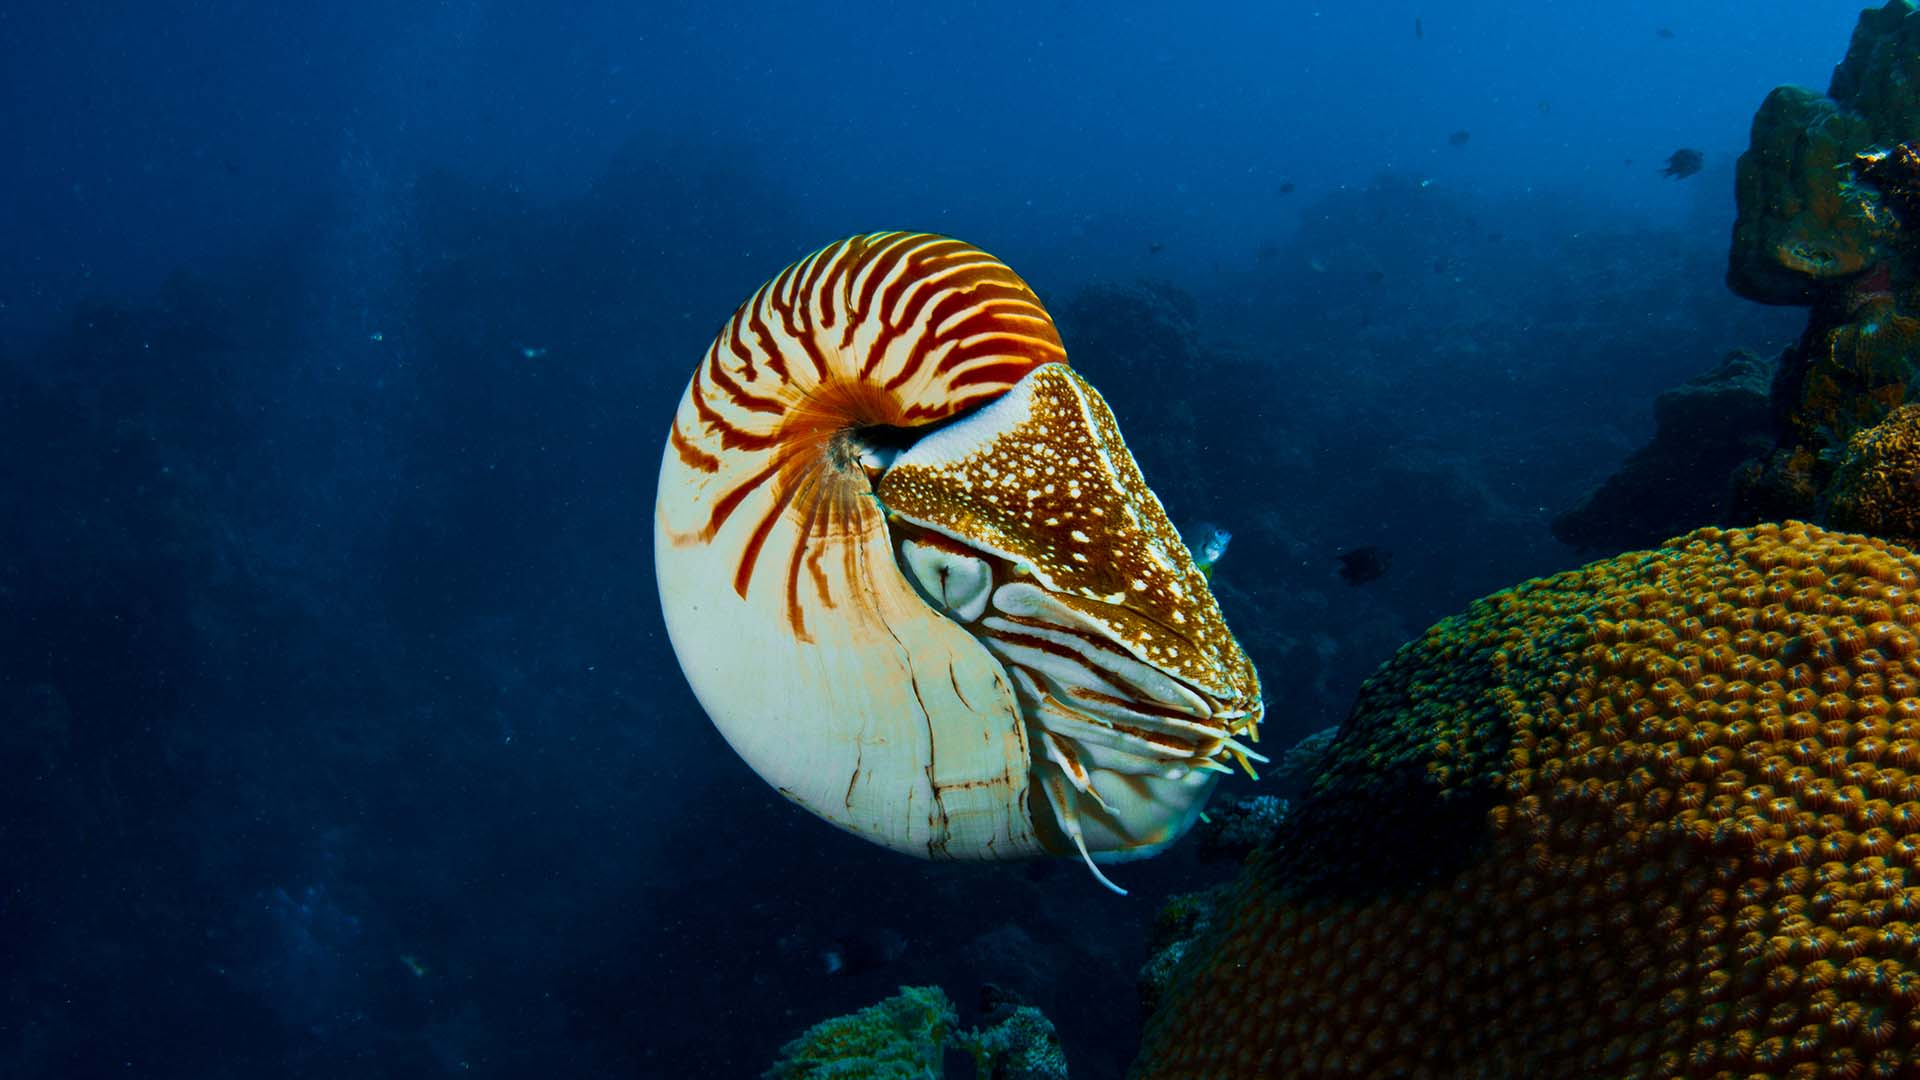 The chambered nautilus has a specialized siphon that it uses to propel itself through the water (© Getty Images)